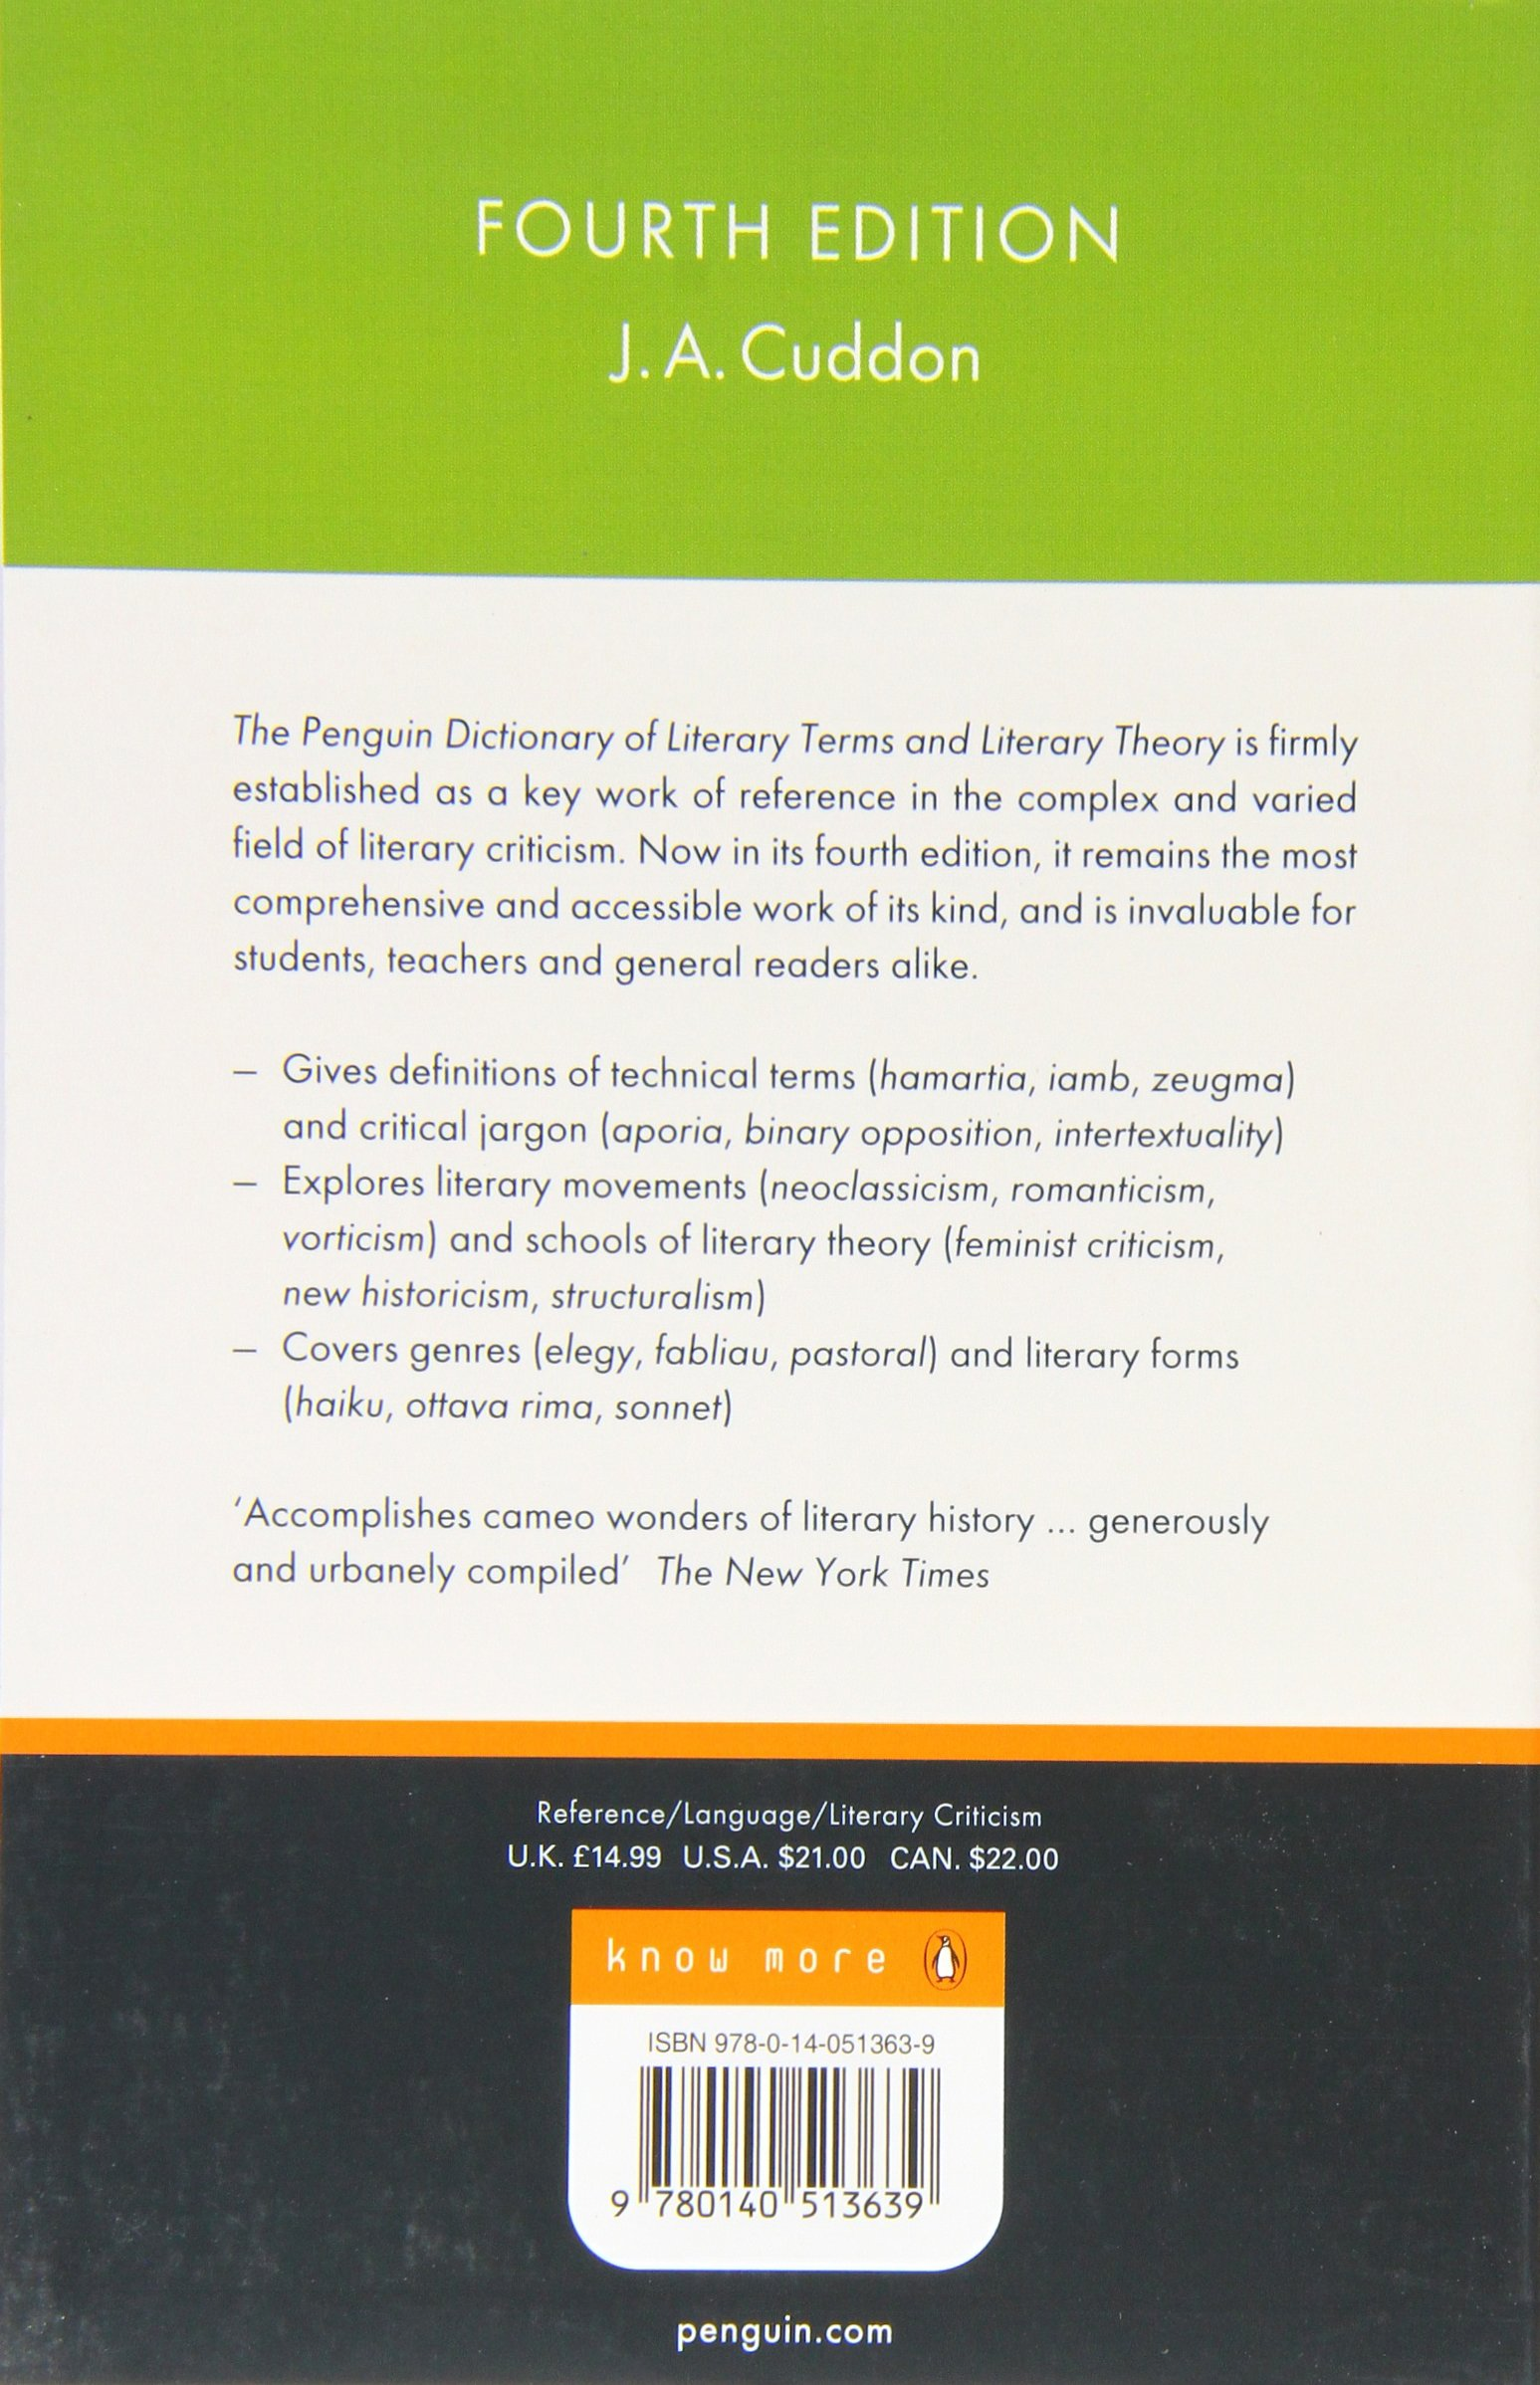 The Penguin Dictionary of Literary Terms and Literary Theory (Reference  Books): Amazon.co.uk: J. A. Cuddon: 8601404243325: Books